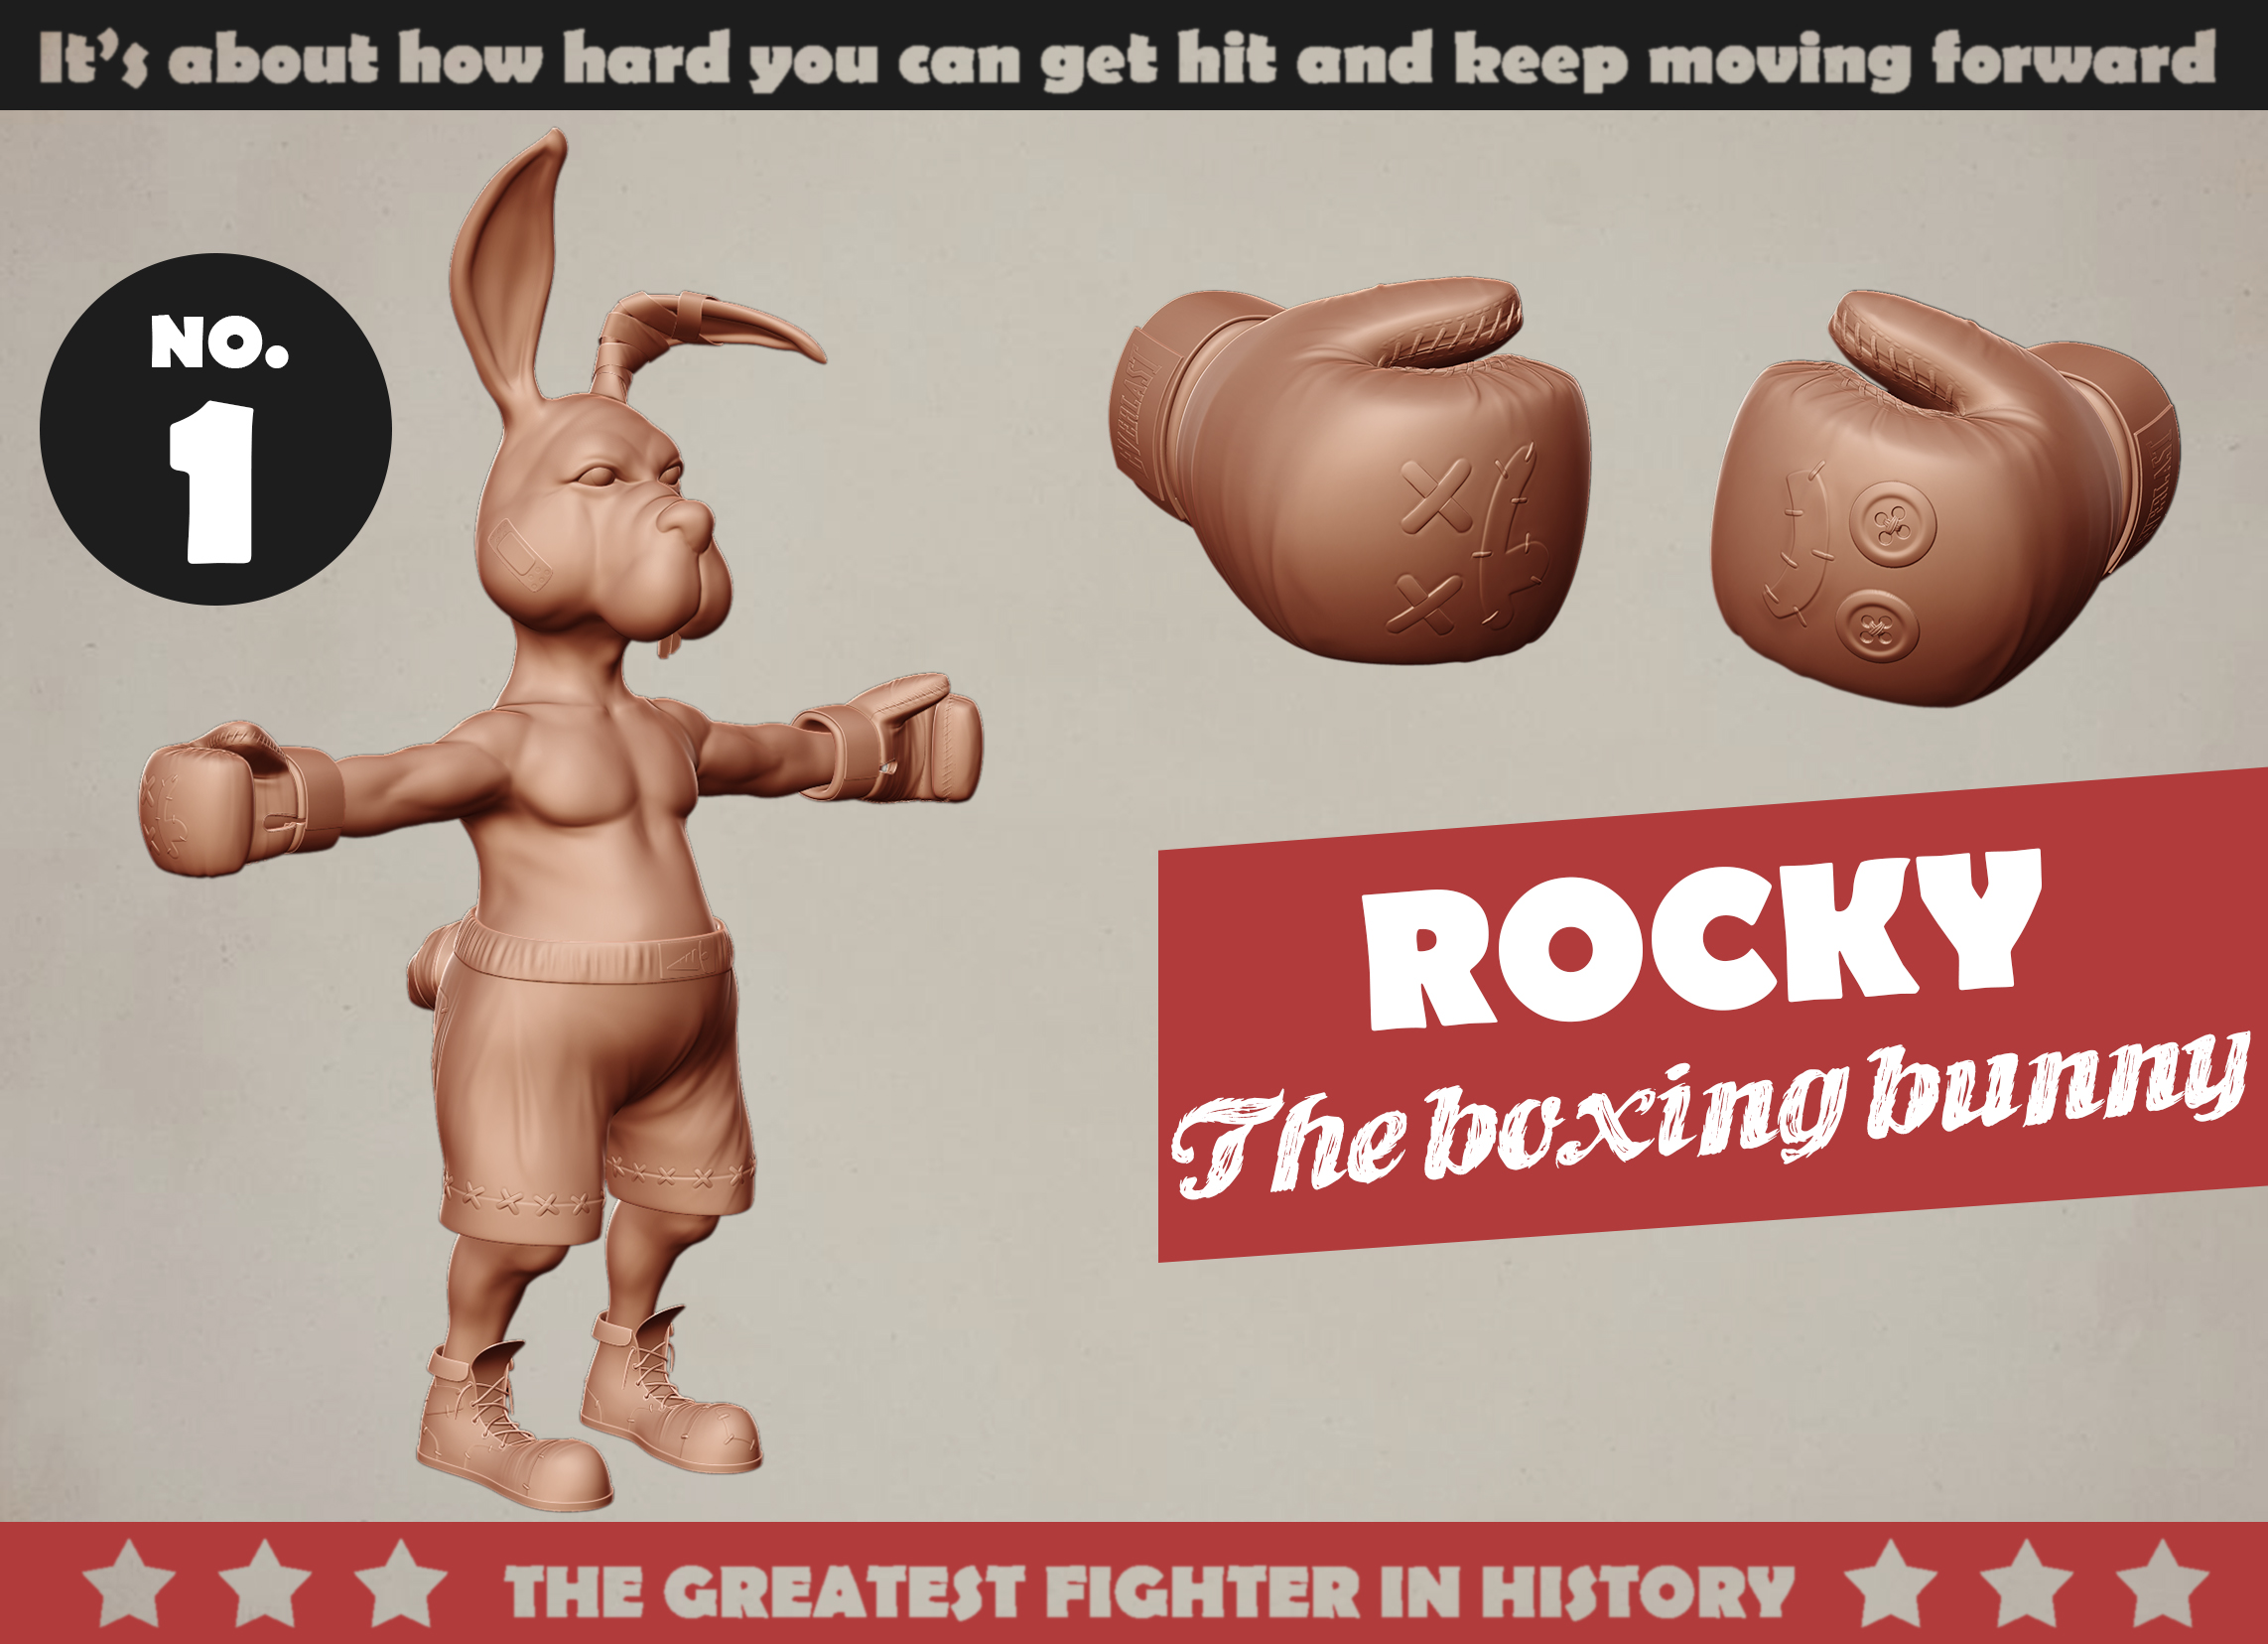 https://assist-software.net/Rocky%20the%20boxing%20bunny